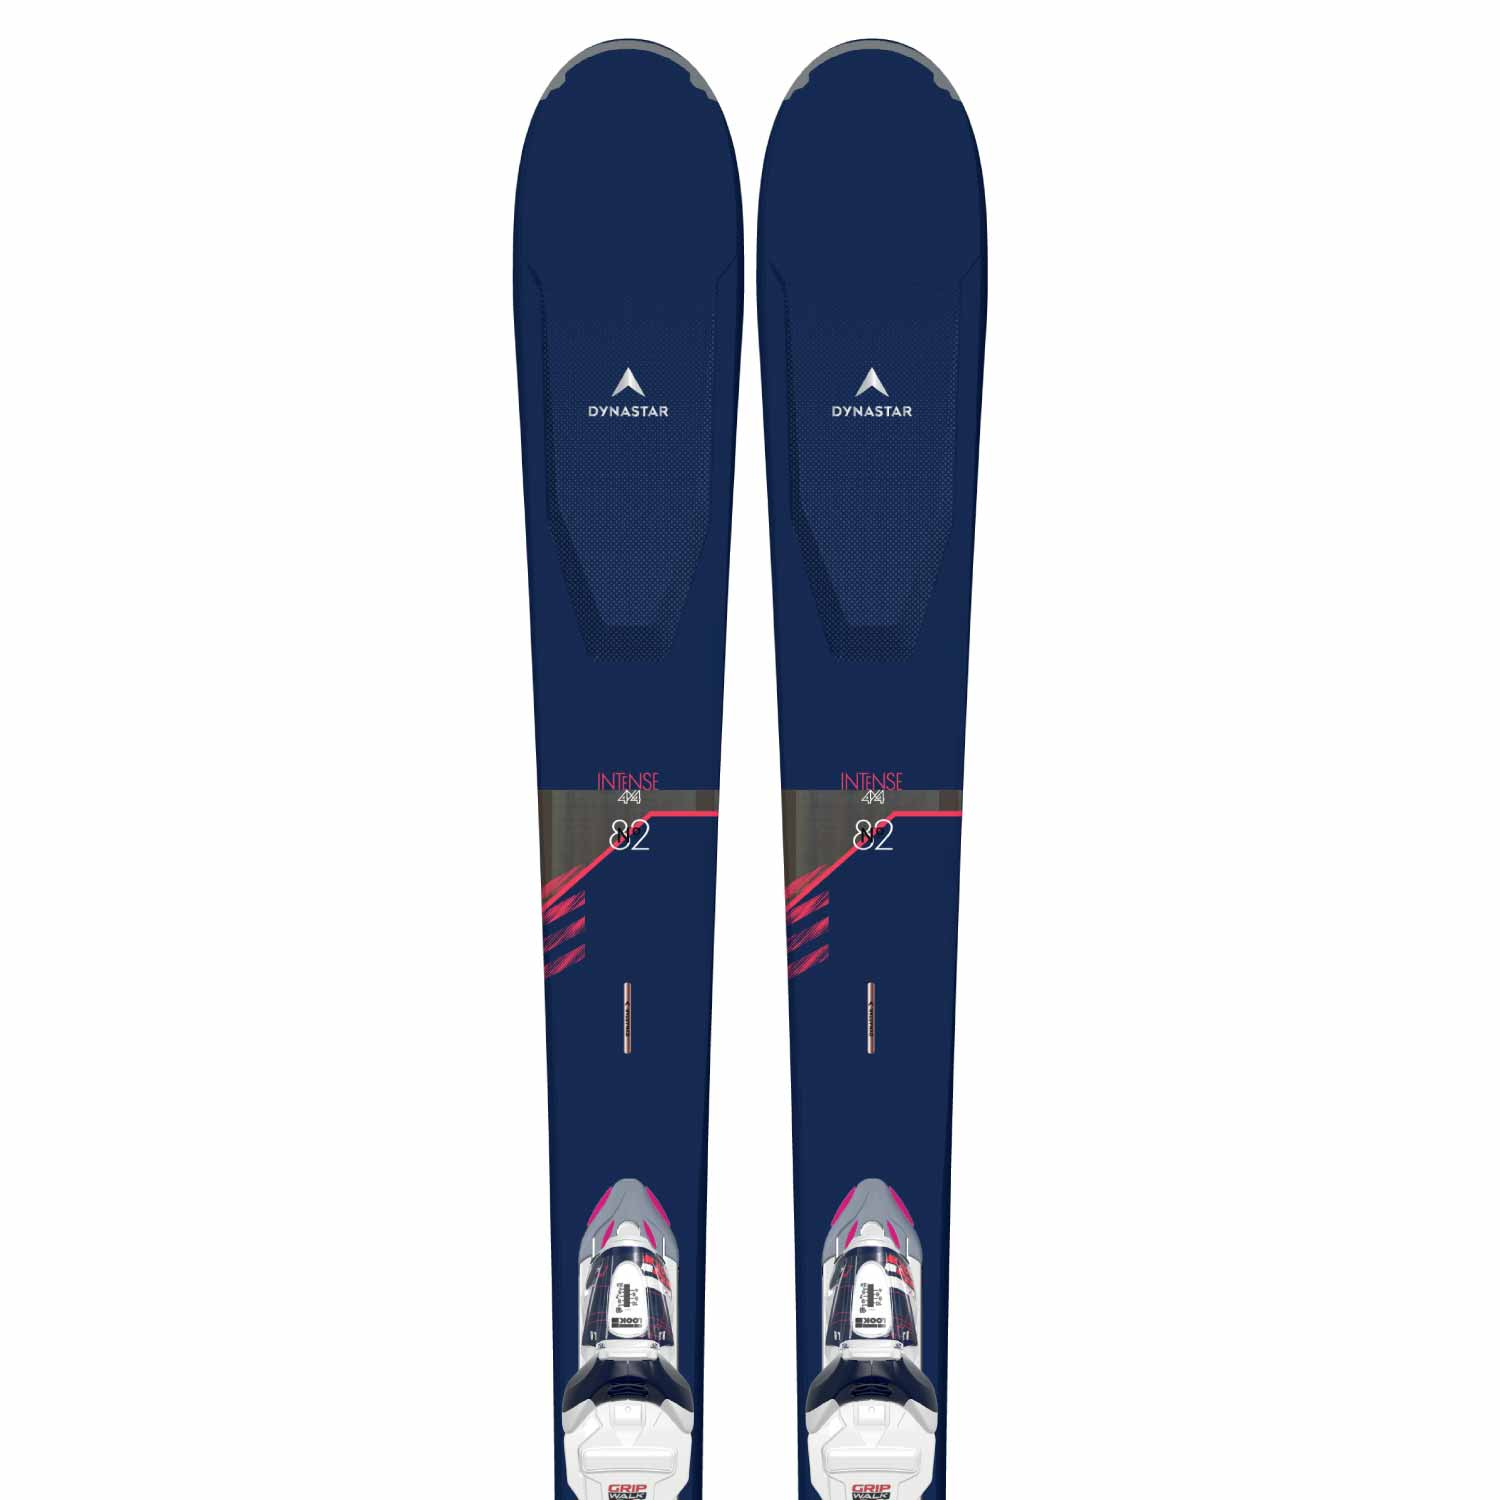 Dynastar Intense 4x4 82 Ski Xpress W11 GW B83 Binding White/Dark Blue 2020